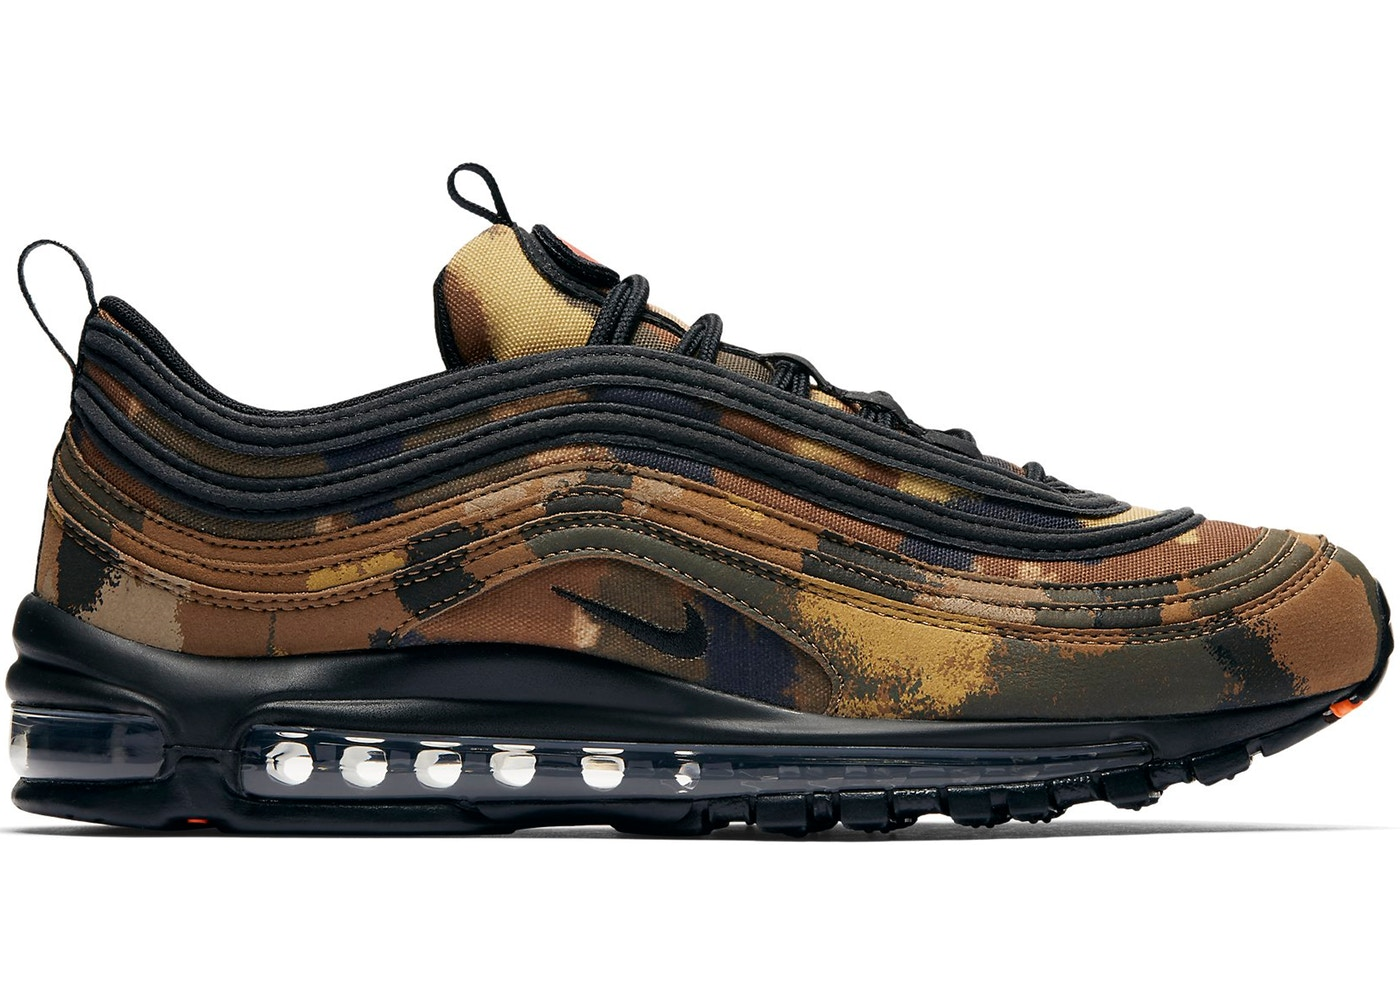 1d0ae18e253 Air Max 97 Country Camo (Italy) - AJ2614-202